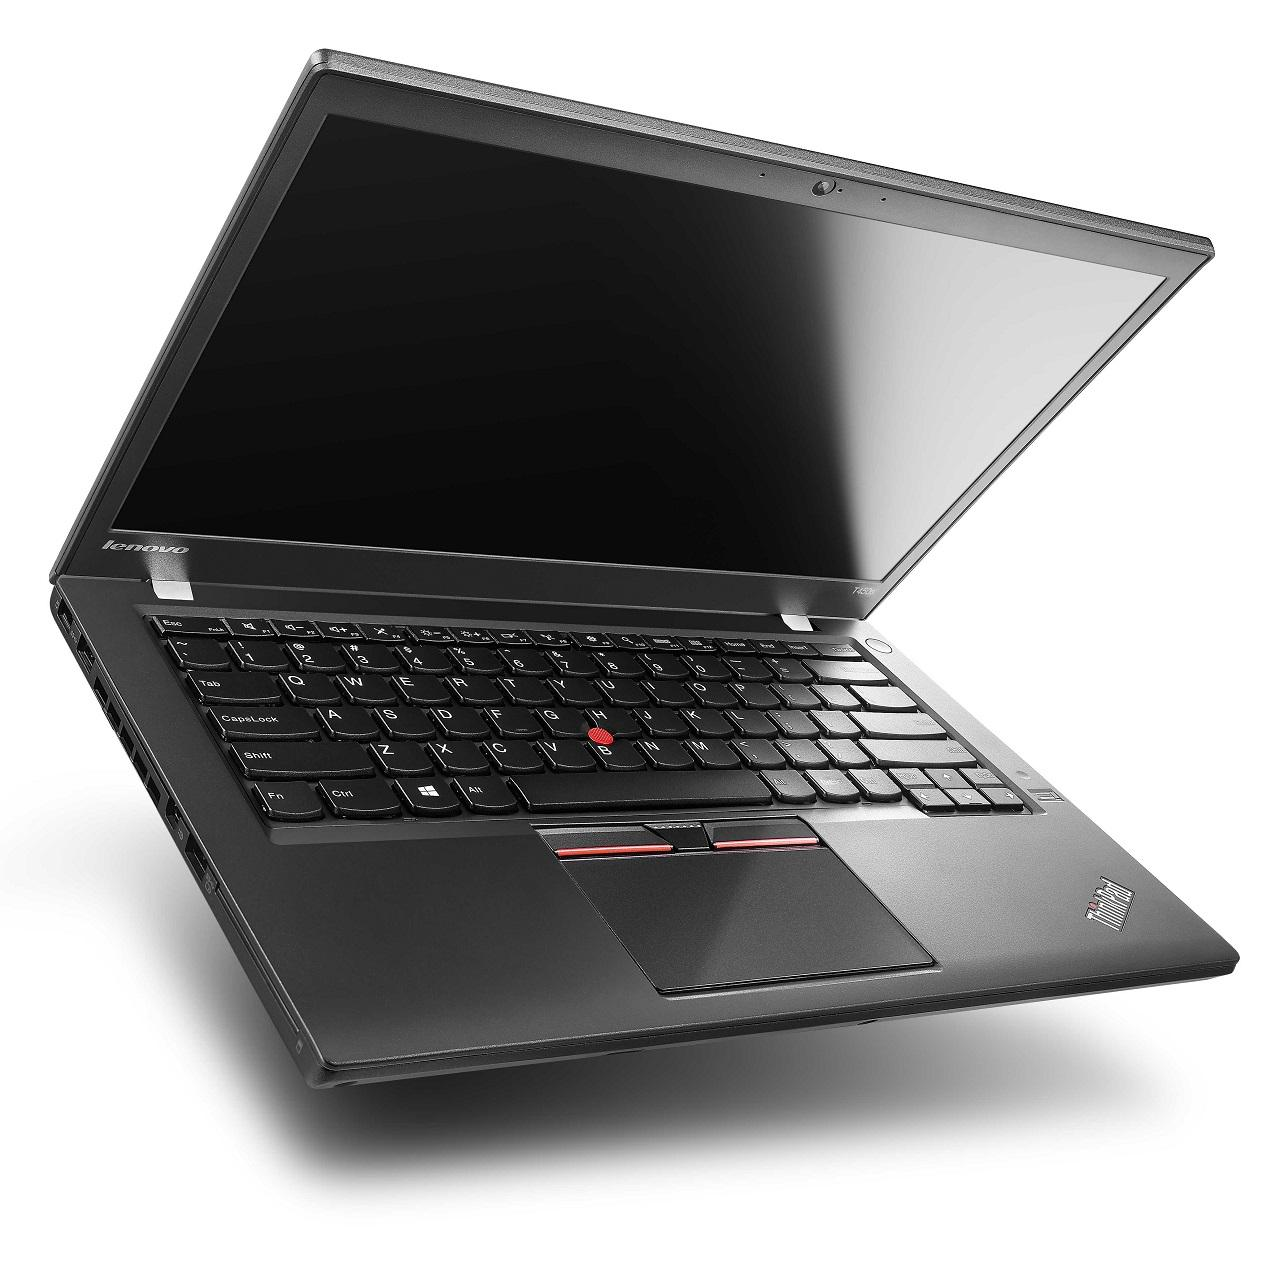 Lenovo ThinkPad T450, T450s and T550: thin notebooks for business